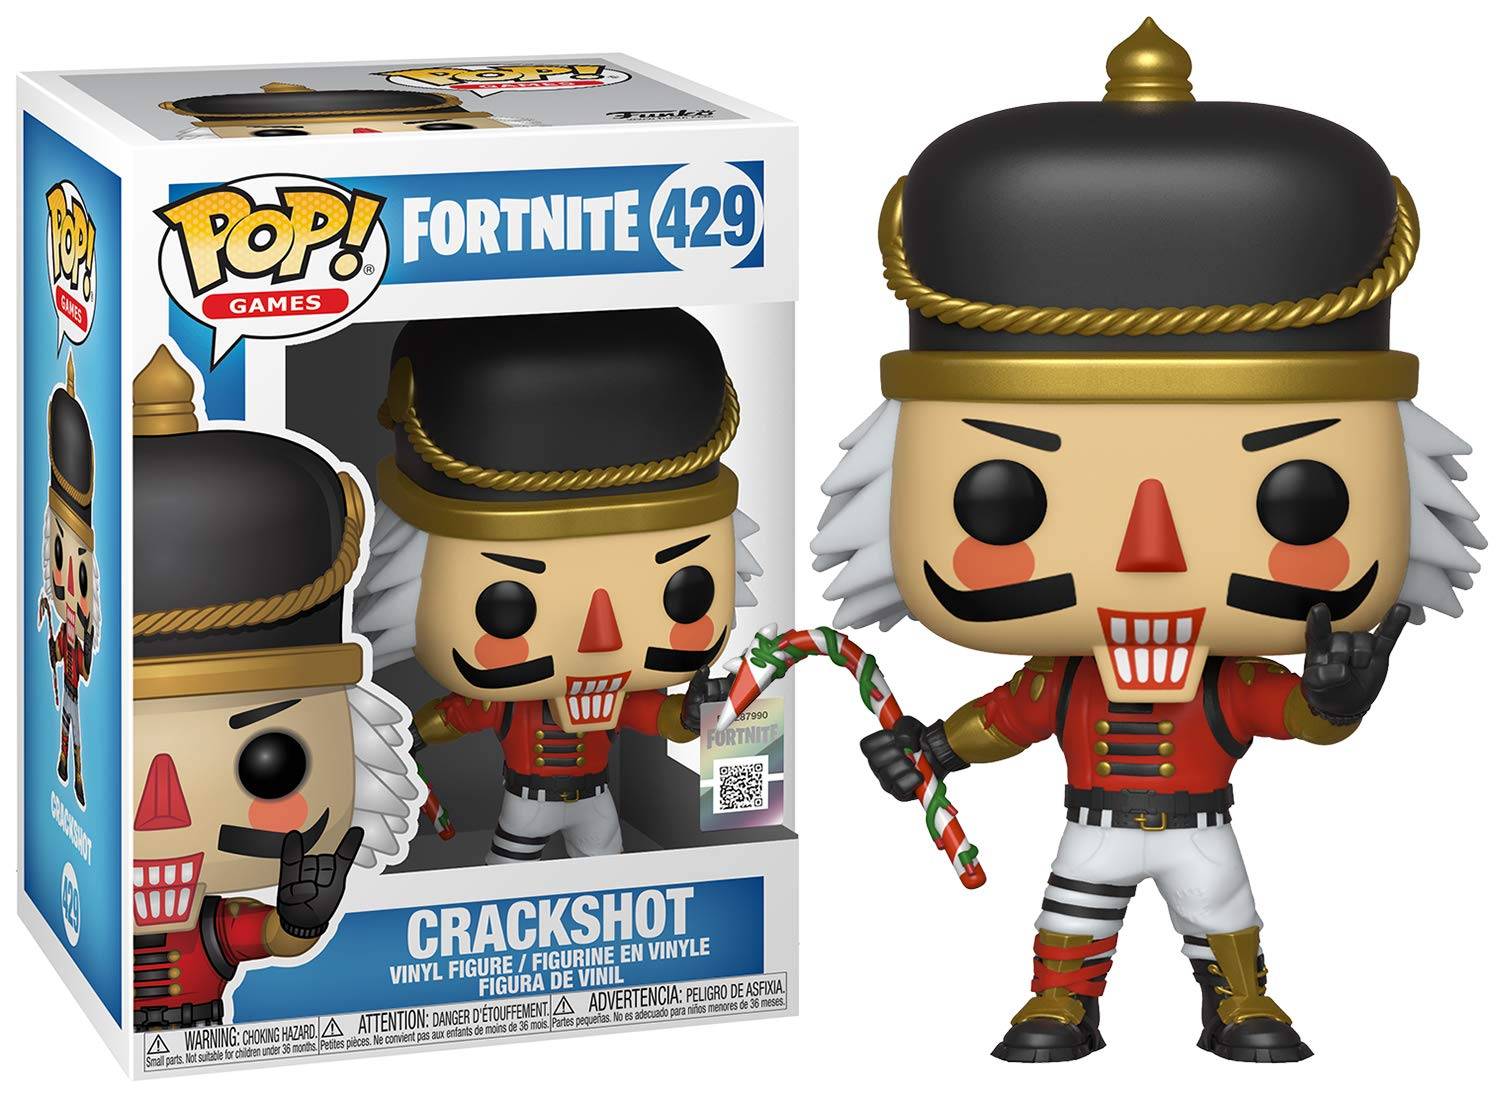 Funko Pop Crackshot (Fortnite 429) Funko Pop Fortnite